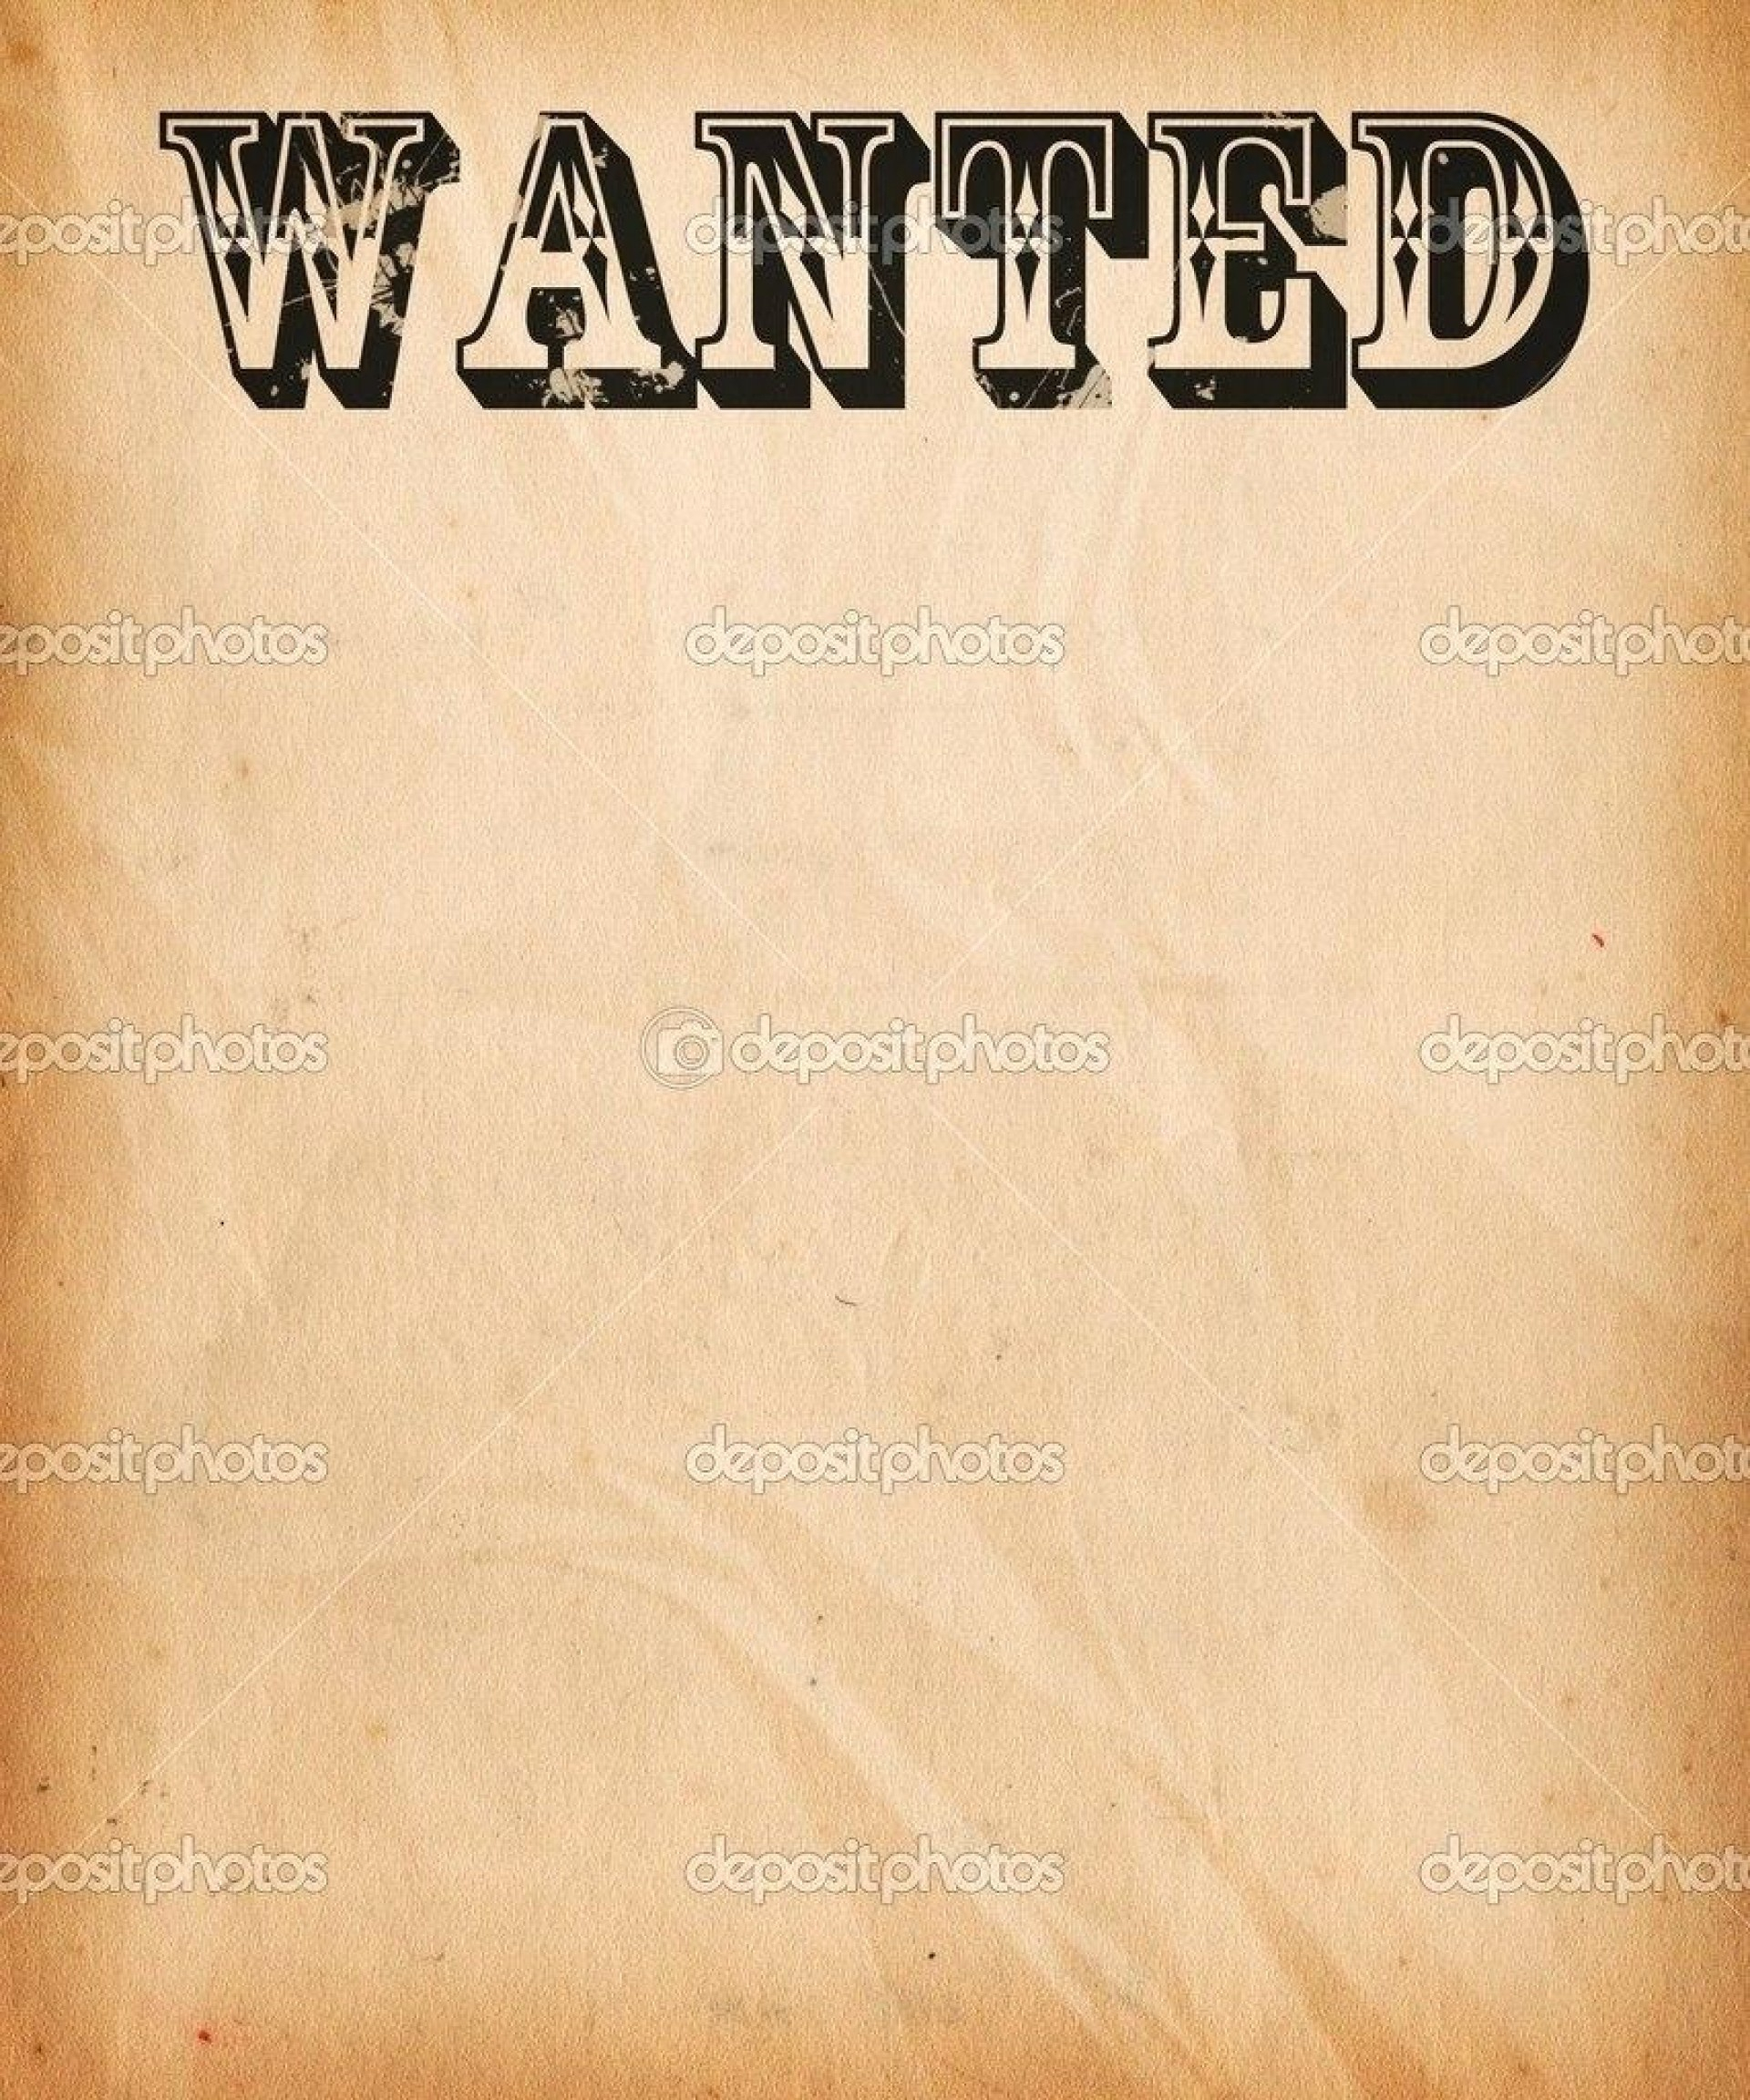 001 Template Ideas Free Wanted Poster Printable Lovely throughout Wanted Poster Template Free Printable